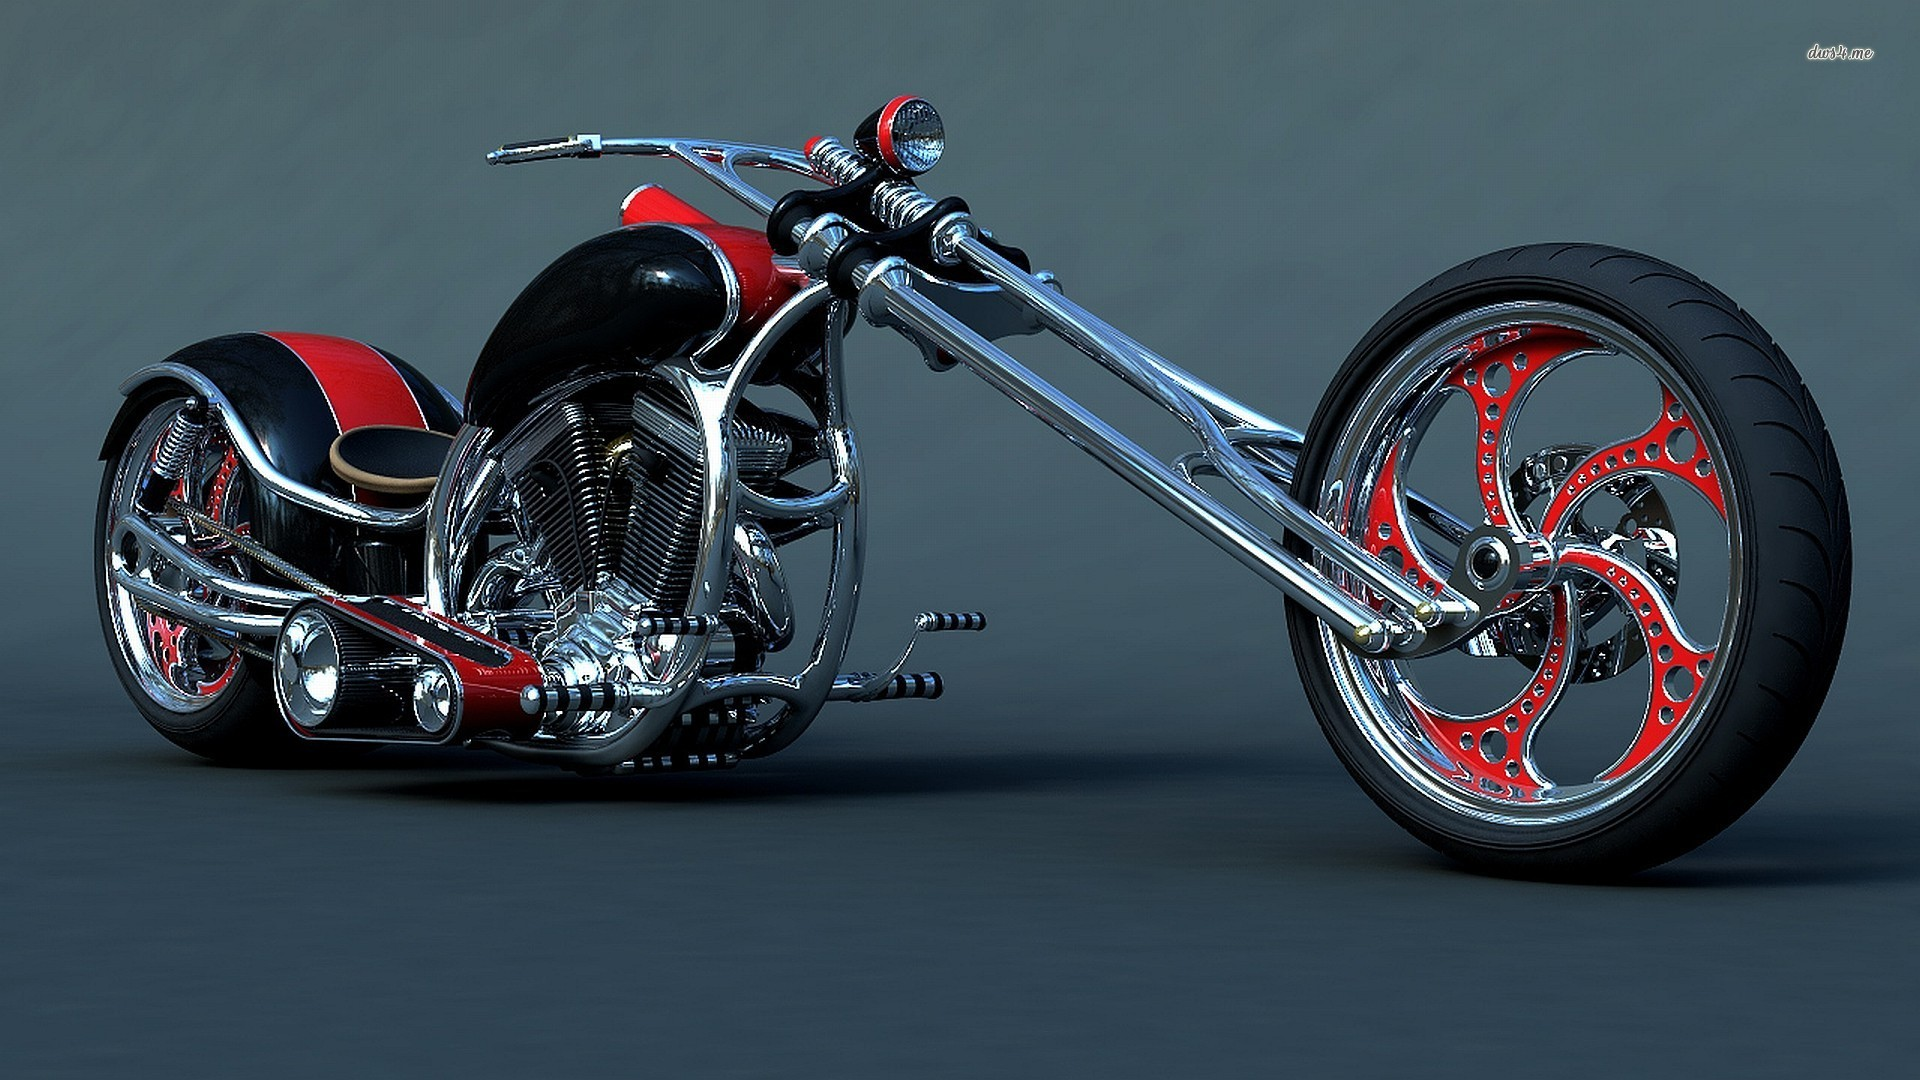 Download Harley Davidson 883 2048 X 2048 Wallpapers: Harley Davidson Wallpaper Custom Chopper